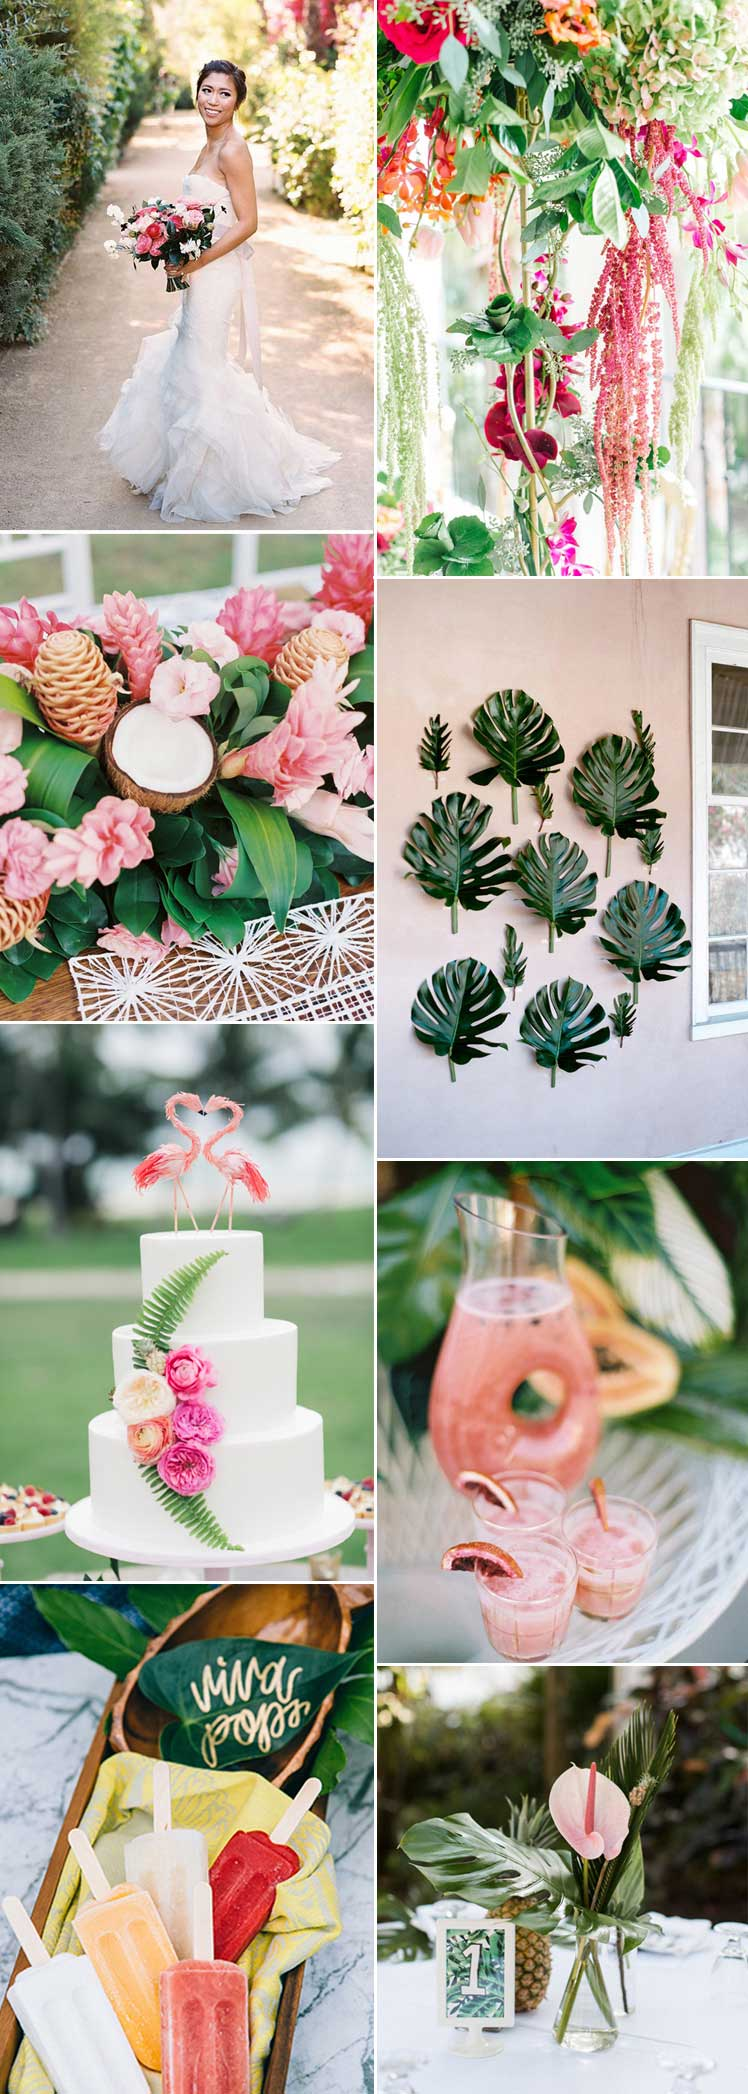 peach and palm tree tropical wedding ideas